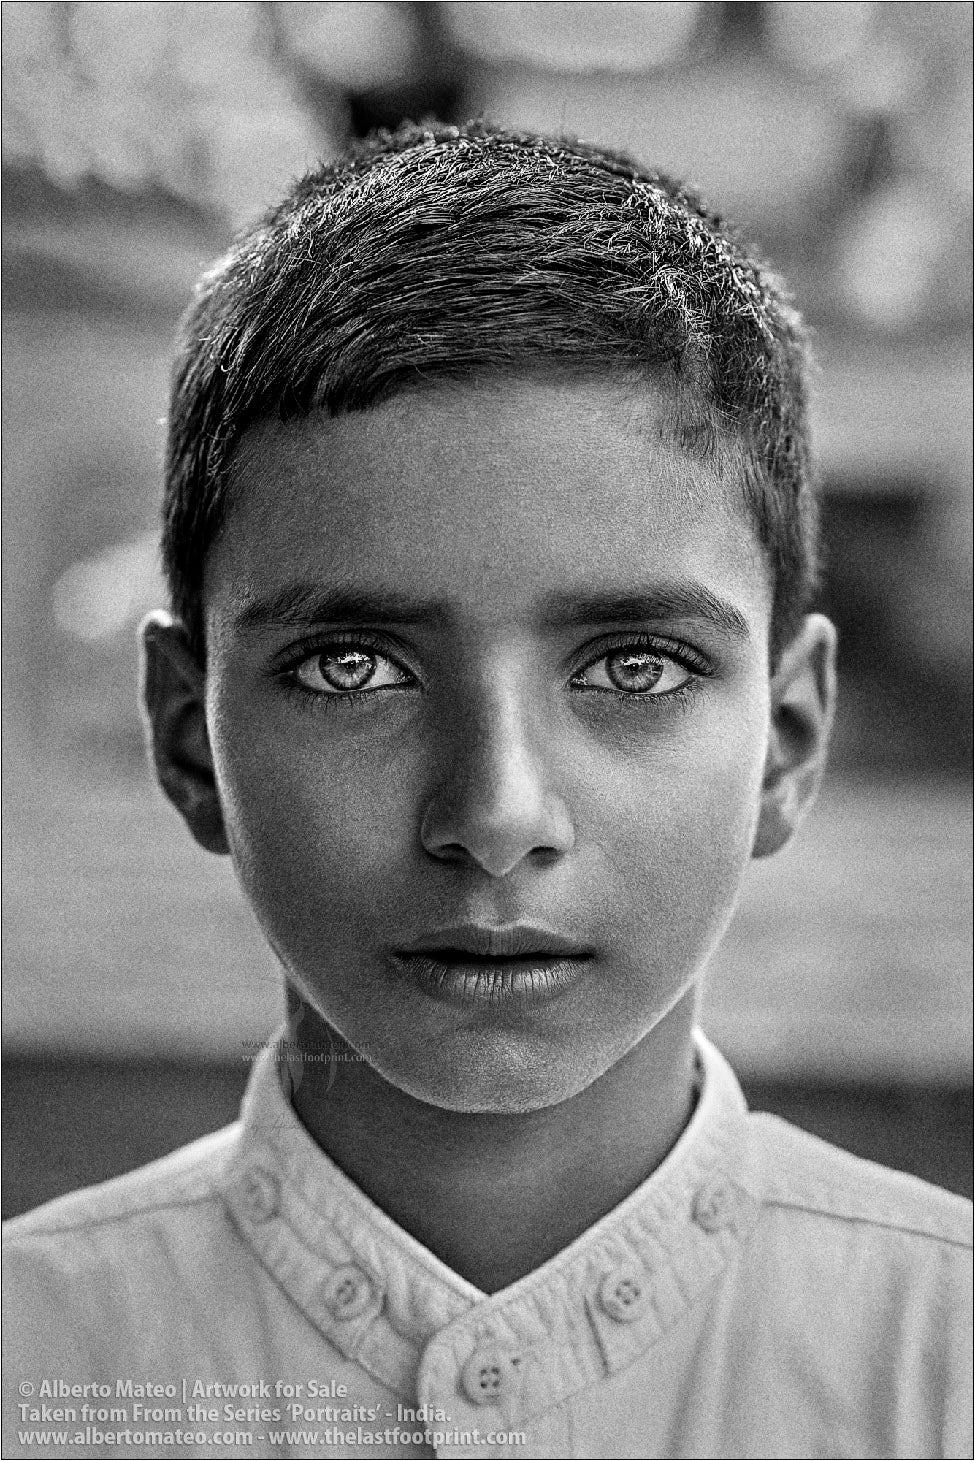 Portrait of green-eyed Muslim Boy, Ballia, Uttar Pradesh, India. [BLACK AND WHITE]